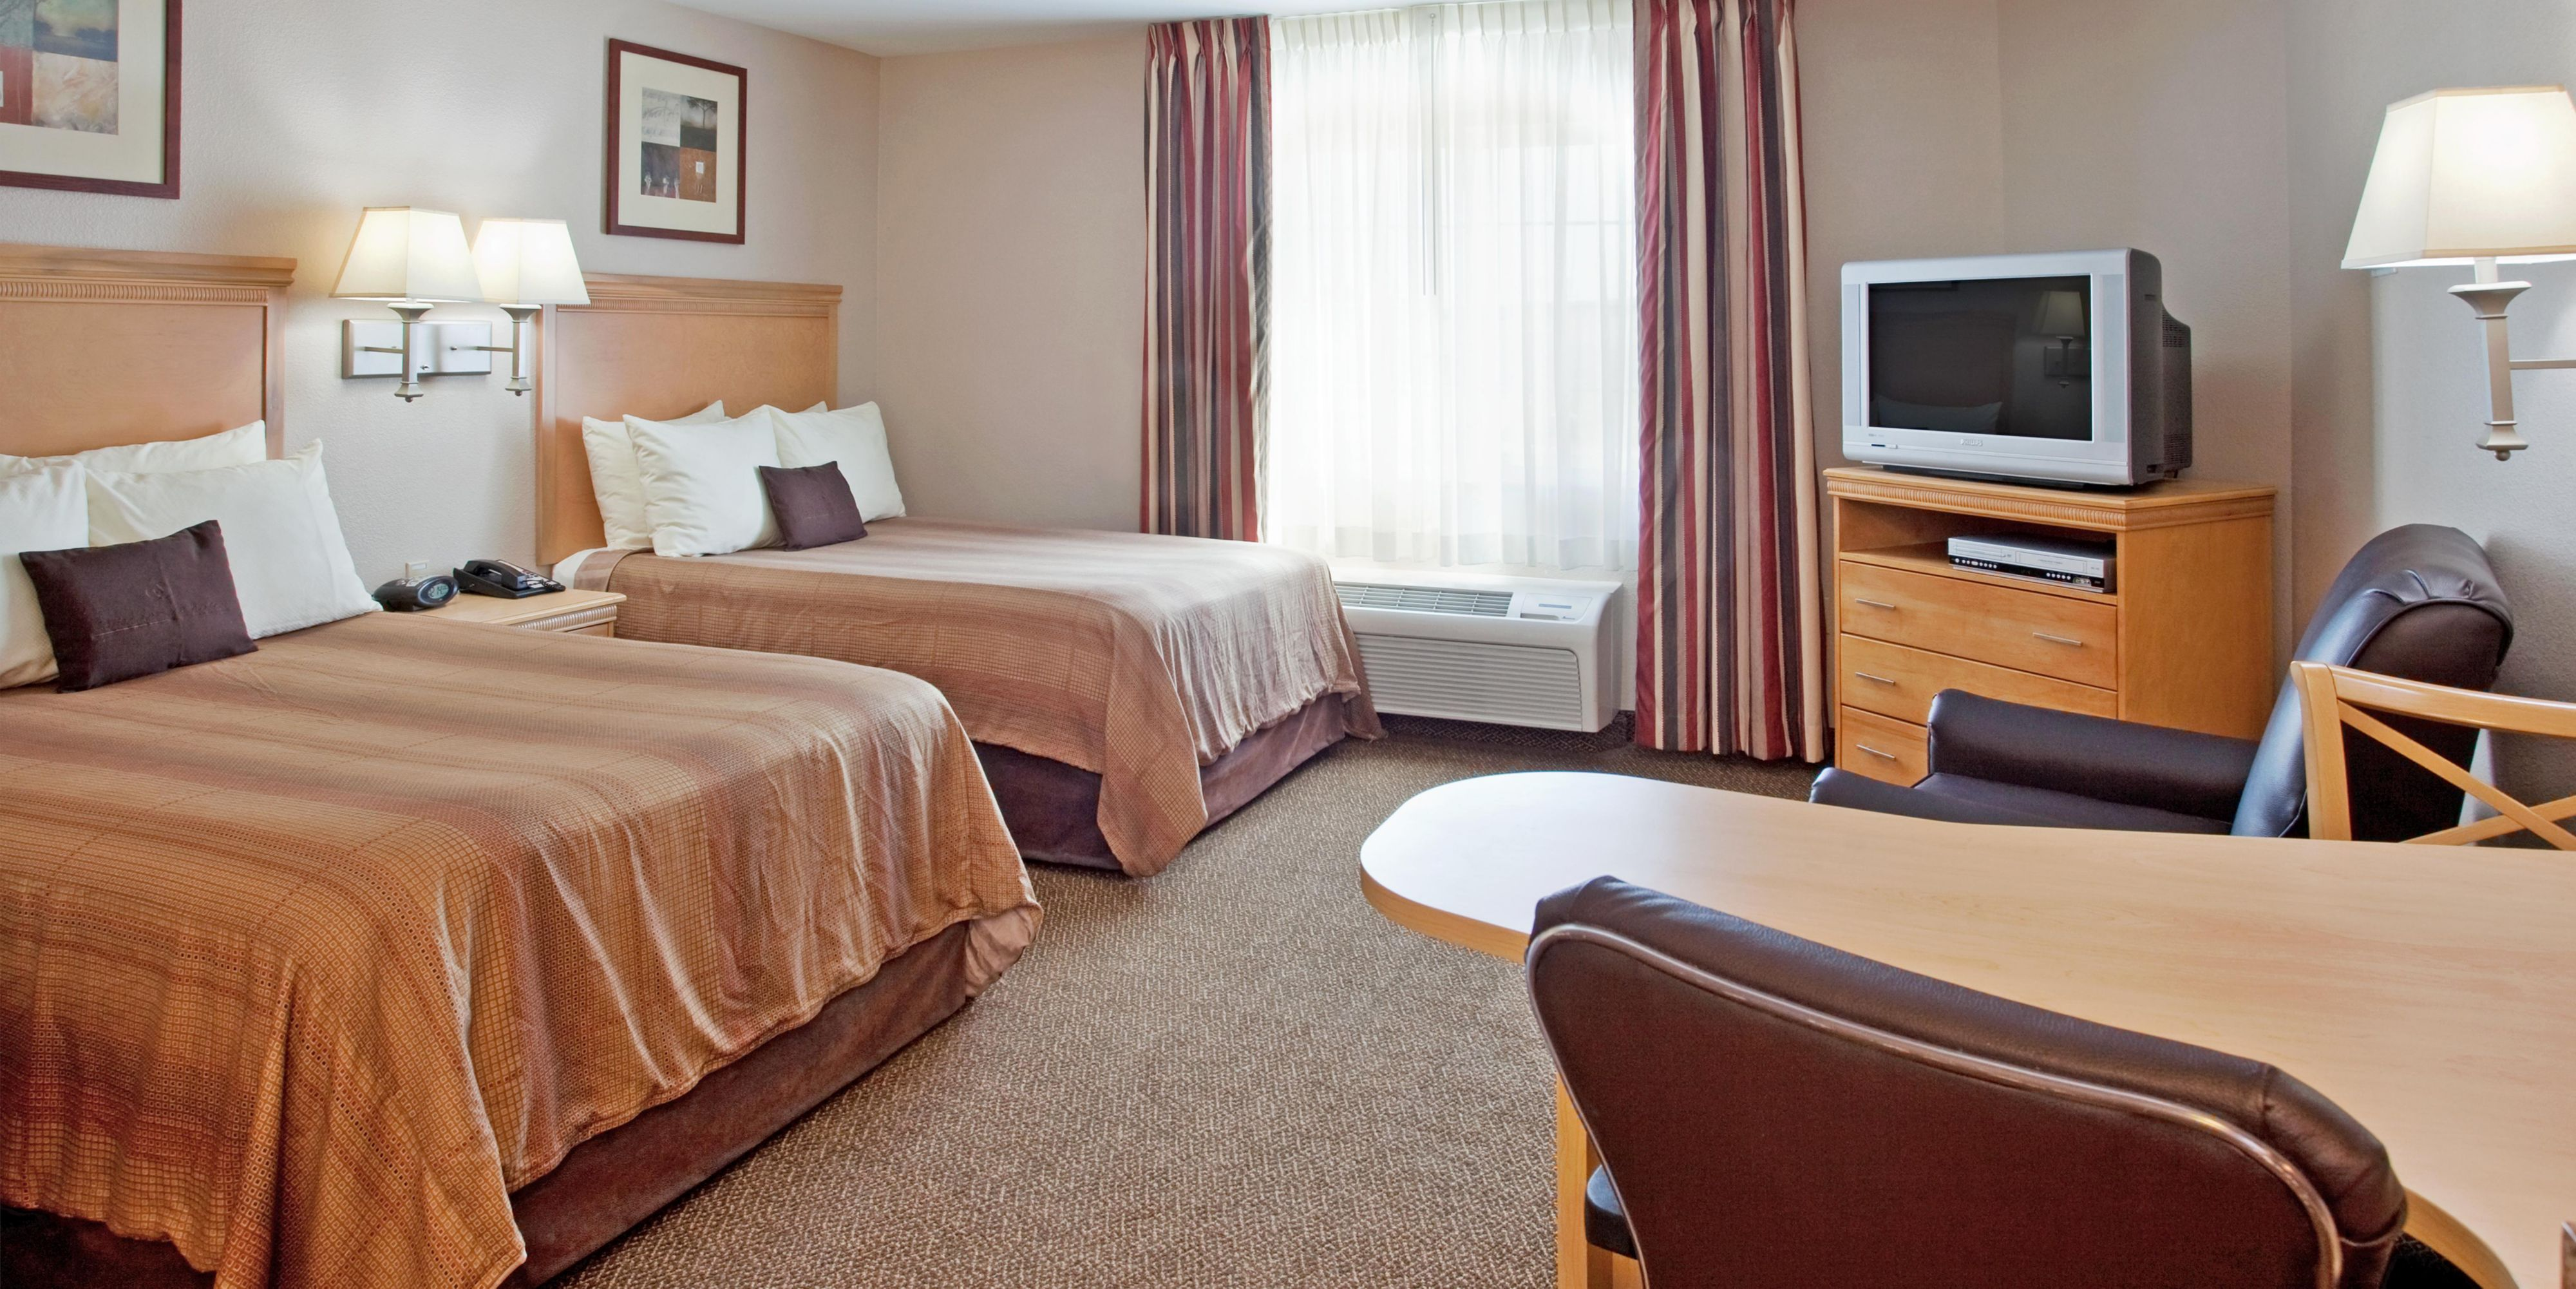 Junction City Hotels: Candlewood Suites Junction City/Ft. Riley   Extended  Stay Hotel In Junction City, Kansas